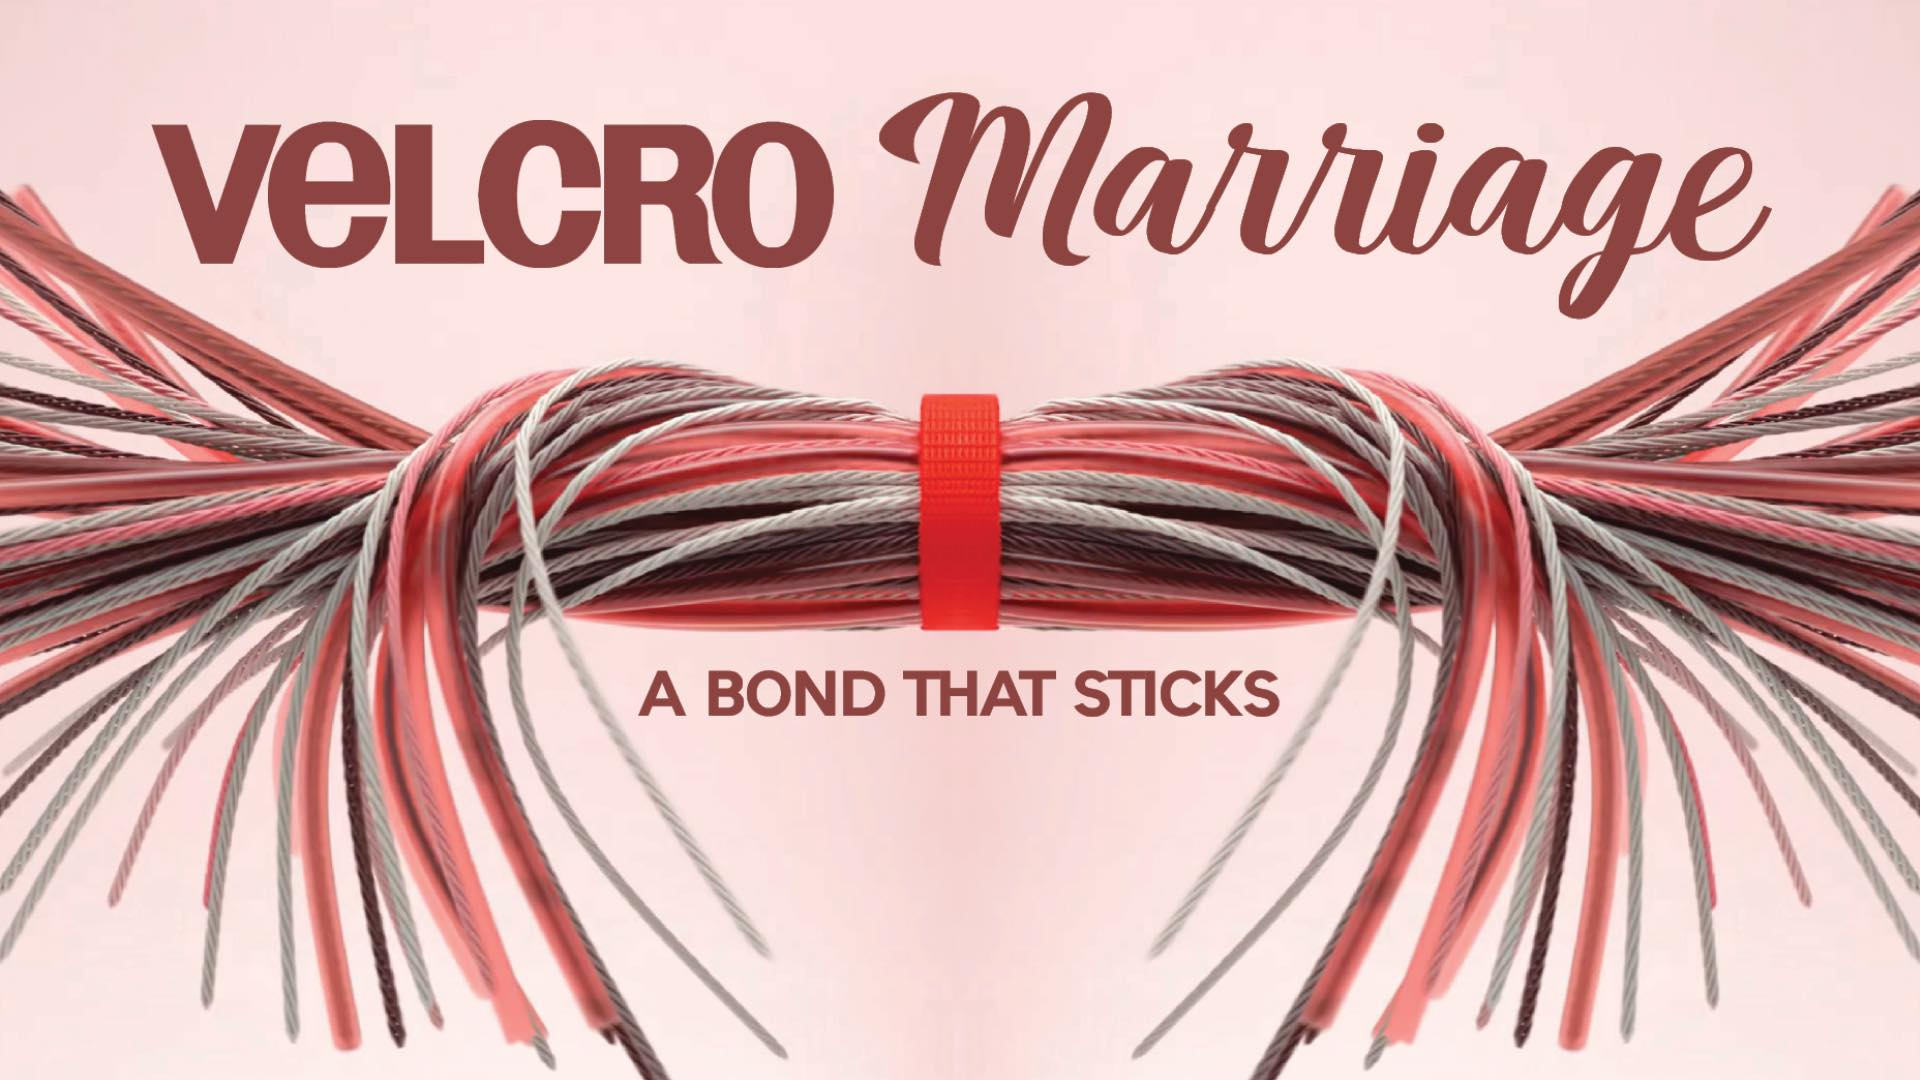 Velcro Marriage - A series that touches on relationships and marriage. How to create a bond that sticks.